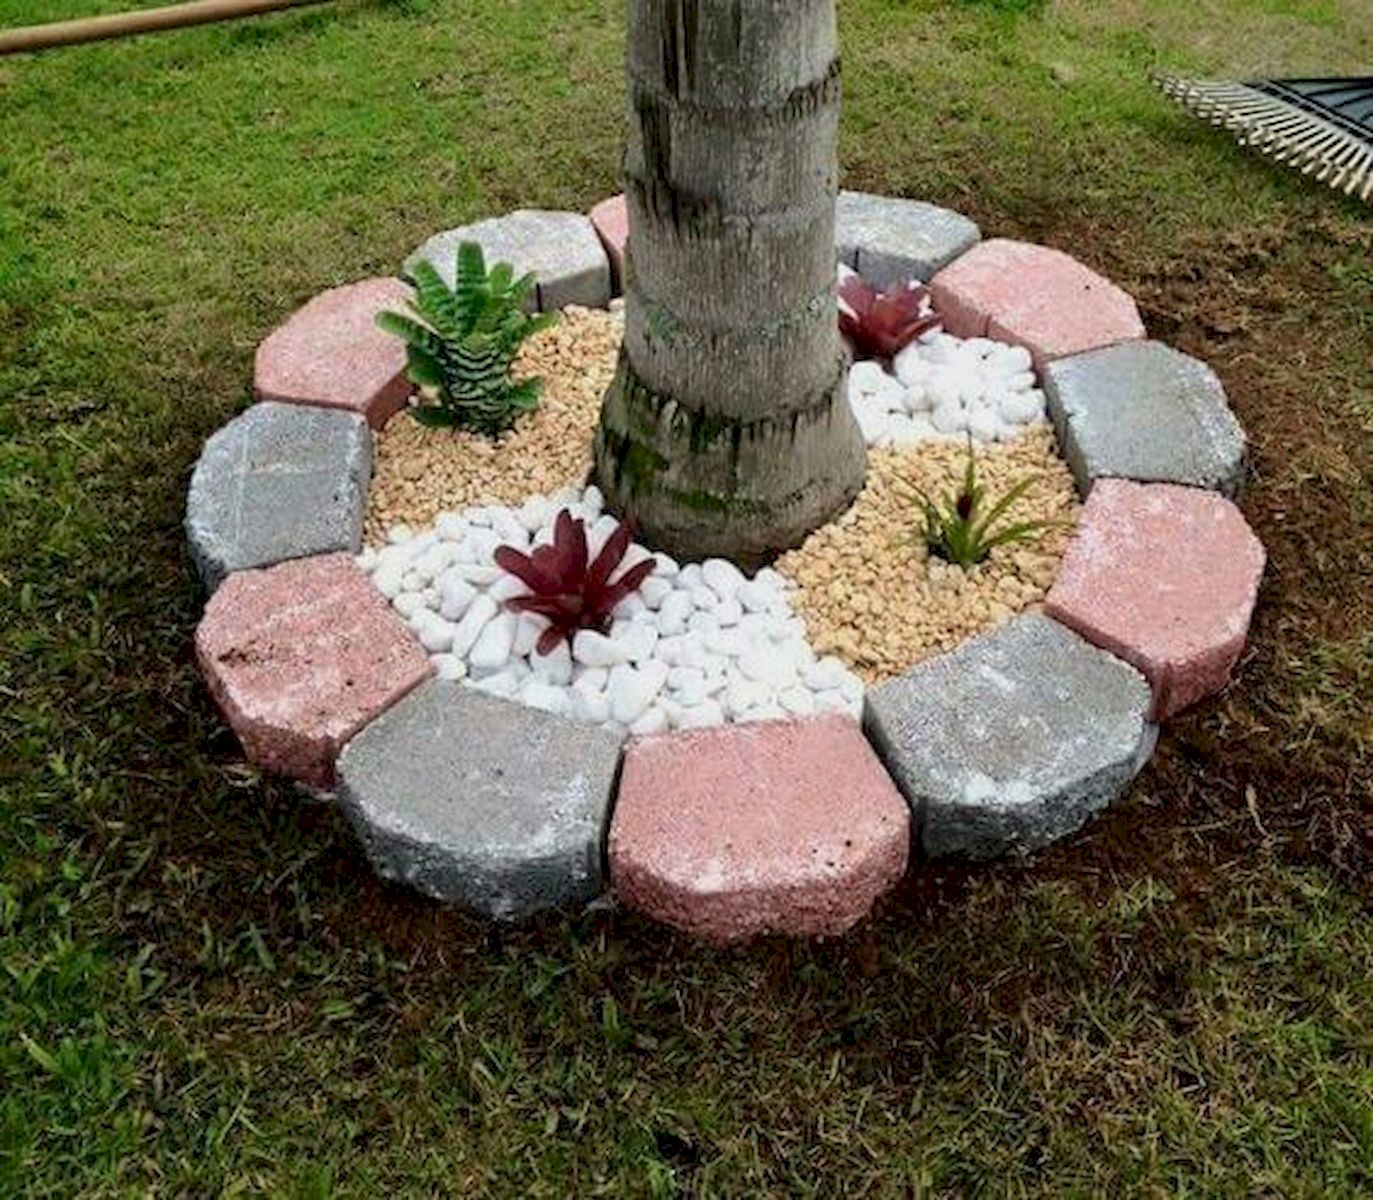 30 Amazing DIY for Garden Projects Ideas You Will Want to Save (11)